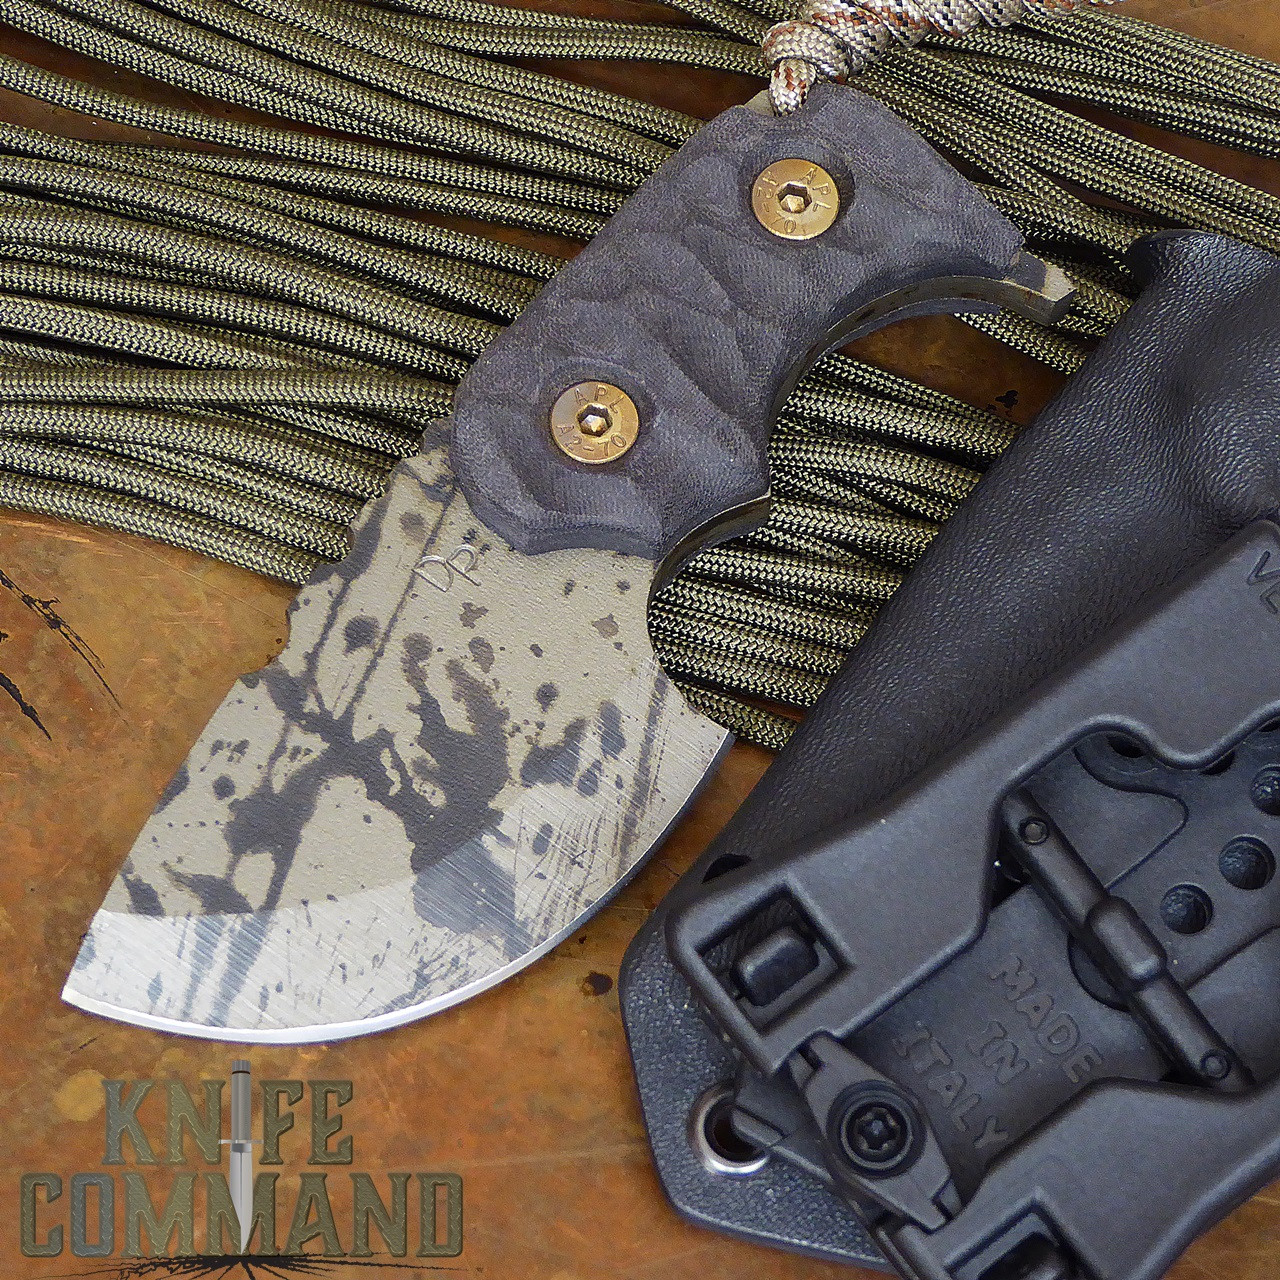 Wander Tactical Tricertops Knife Pitch Black Micarta Black Blood Gunkote.  A great knife for every day carry.